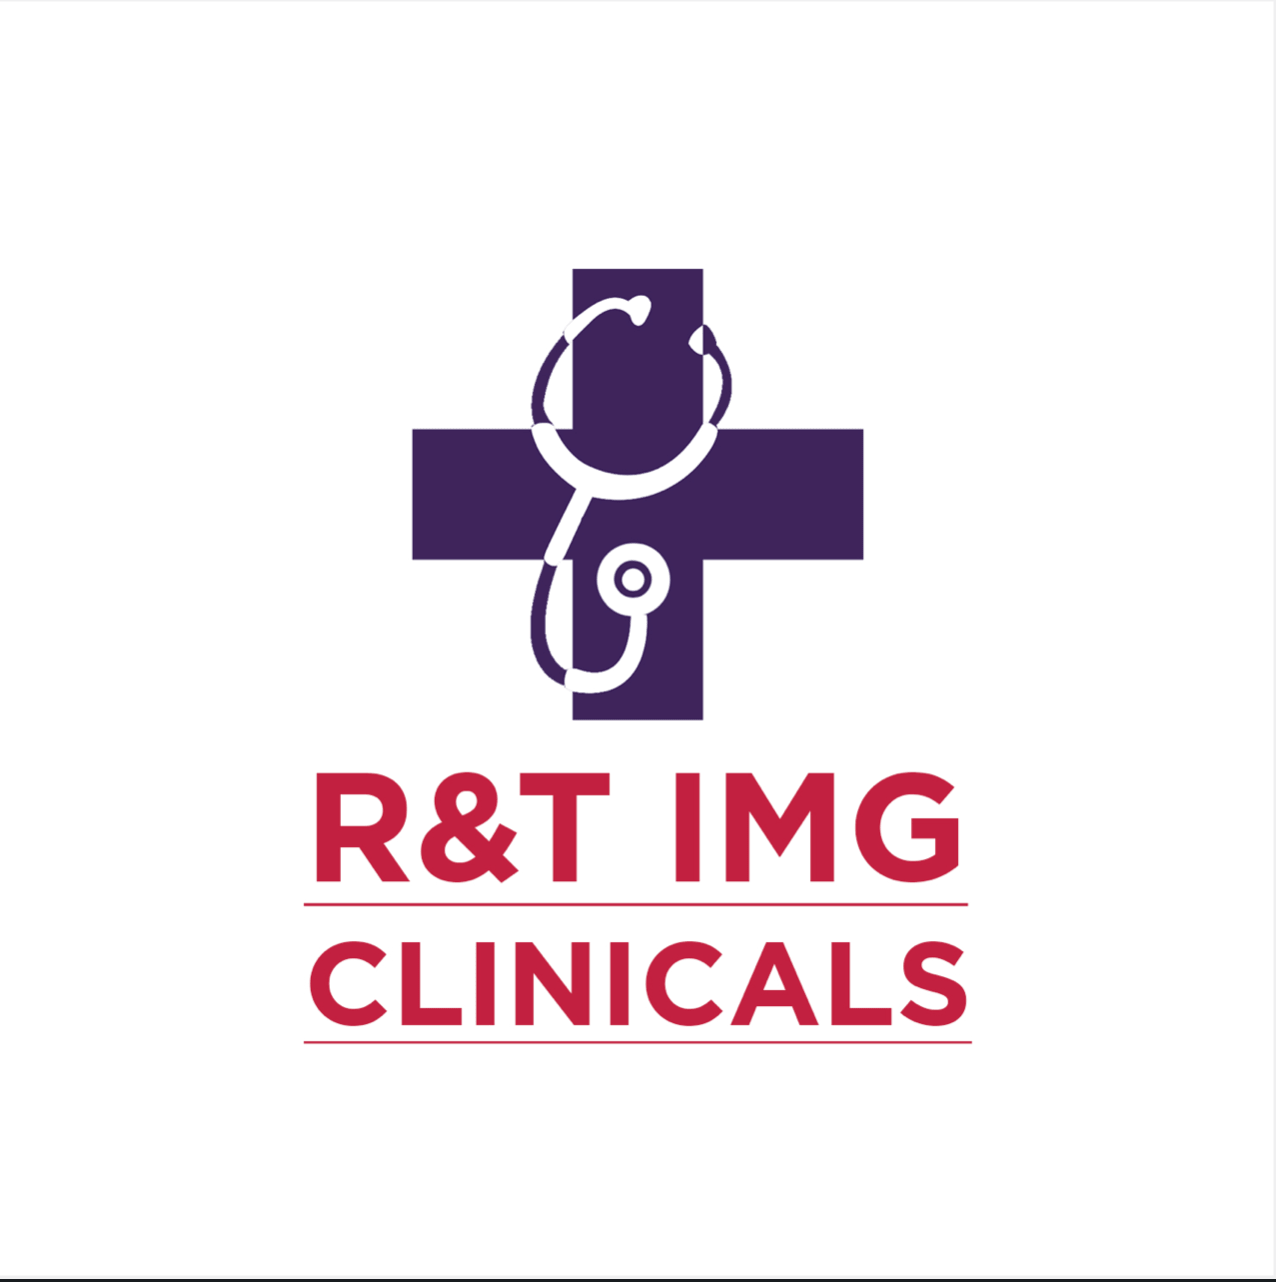 R&T IMG Clinicals Logo